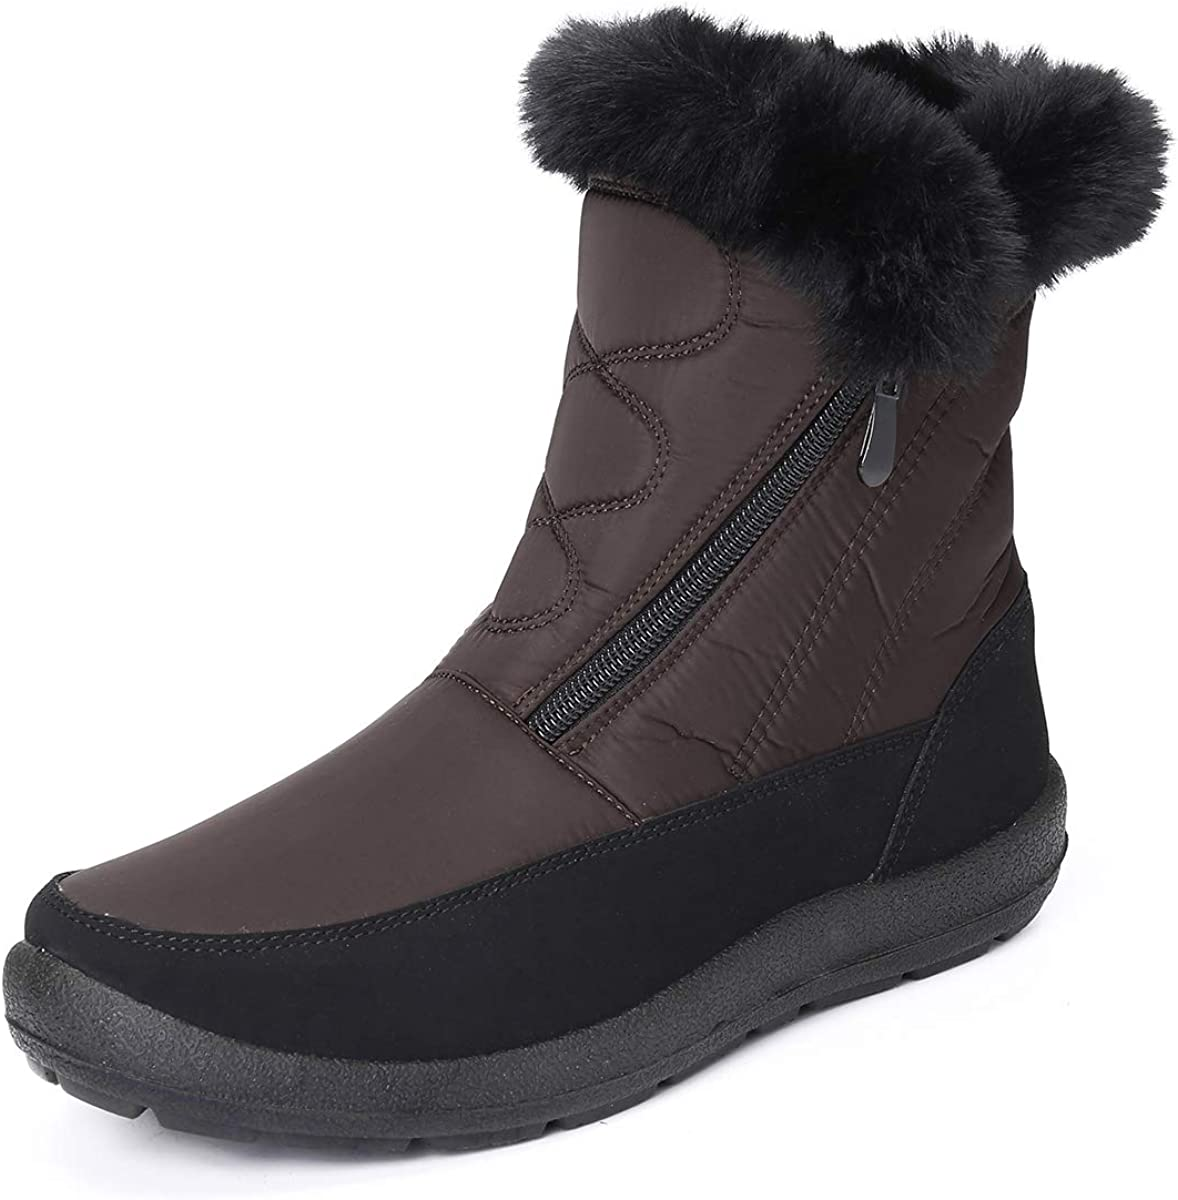 Camfosy Snow Boots for Women